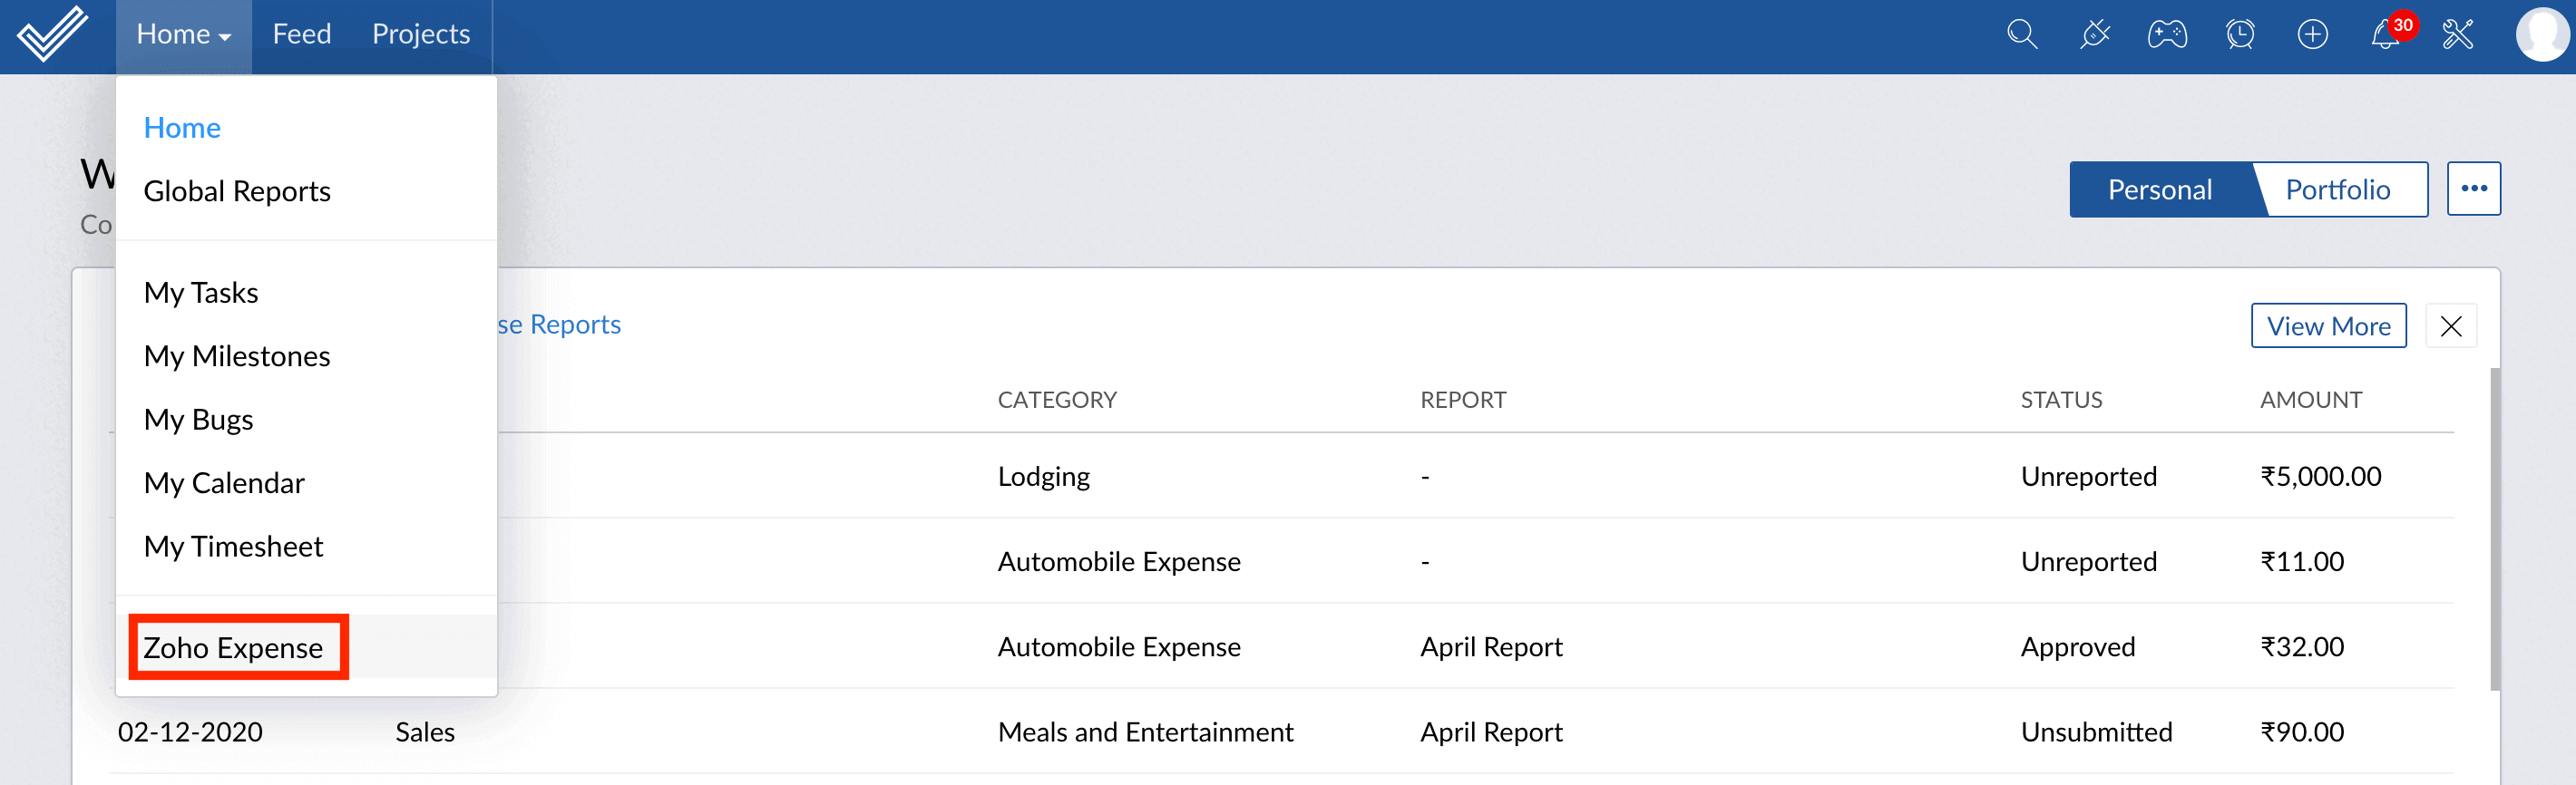 Access Expenses and Reports module in Zoho Projects